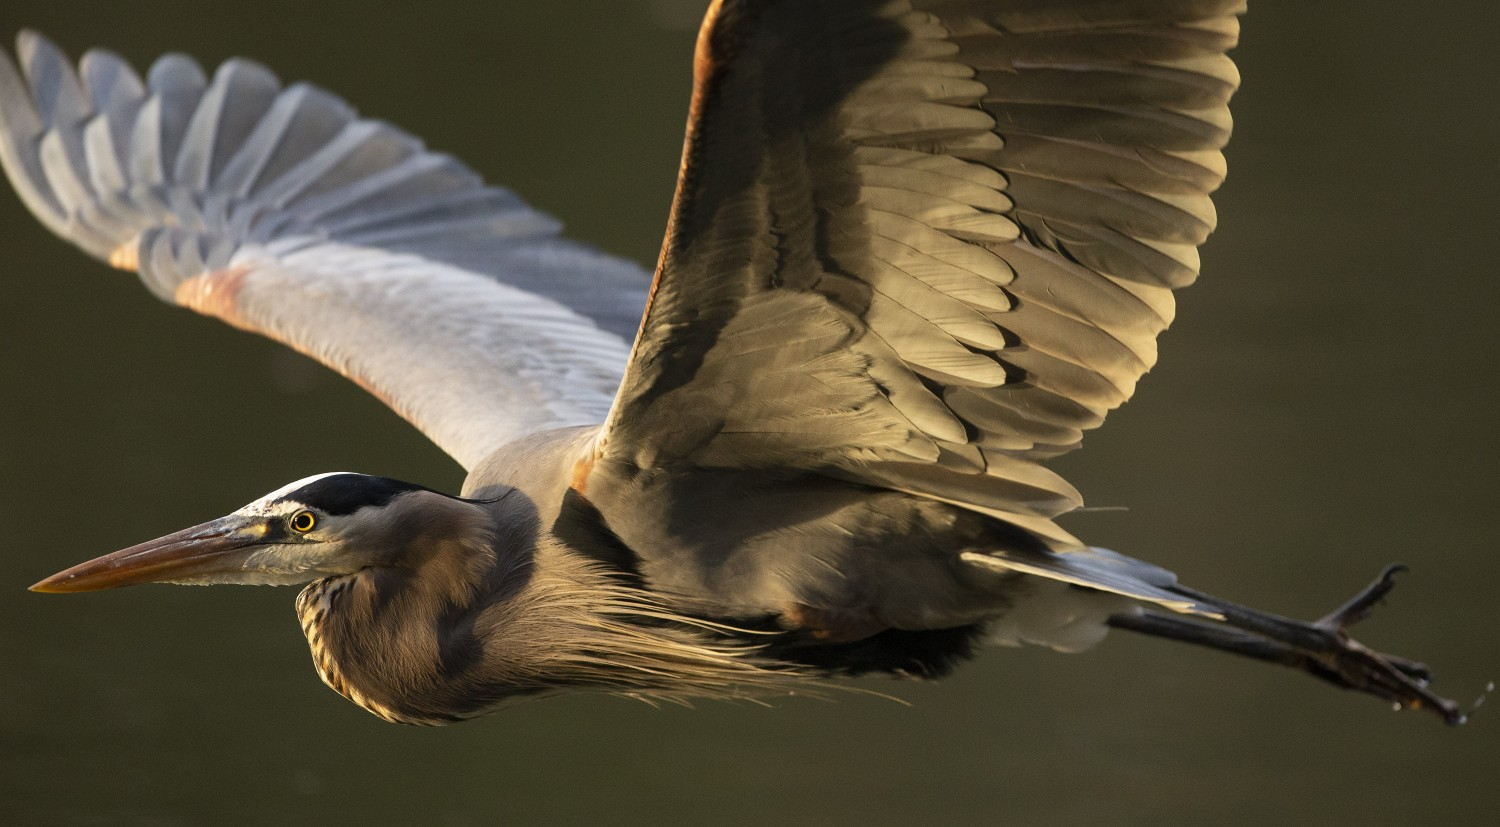 The golden light of sunrise graces the underside feathers of a great blue heron as it flies into the morning.